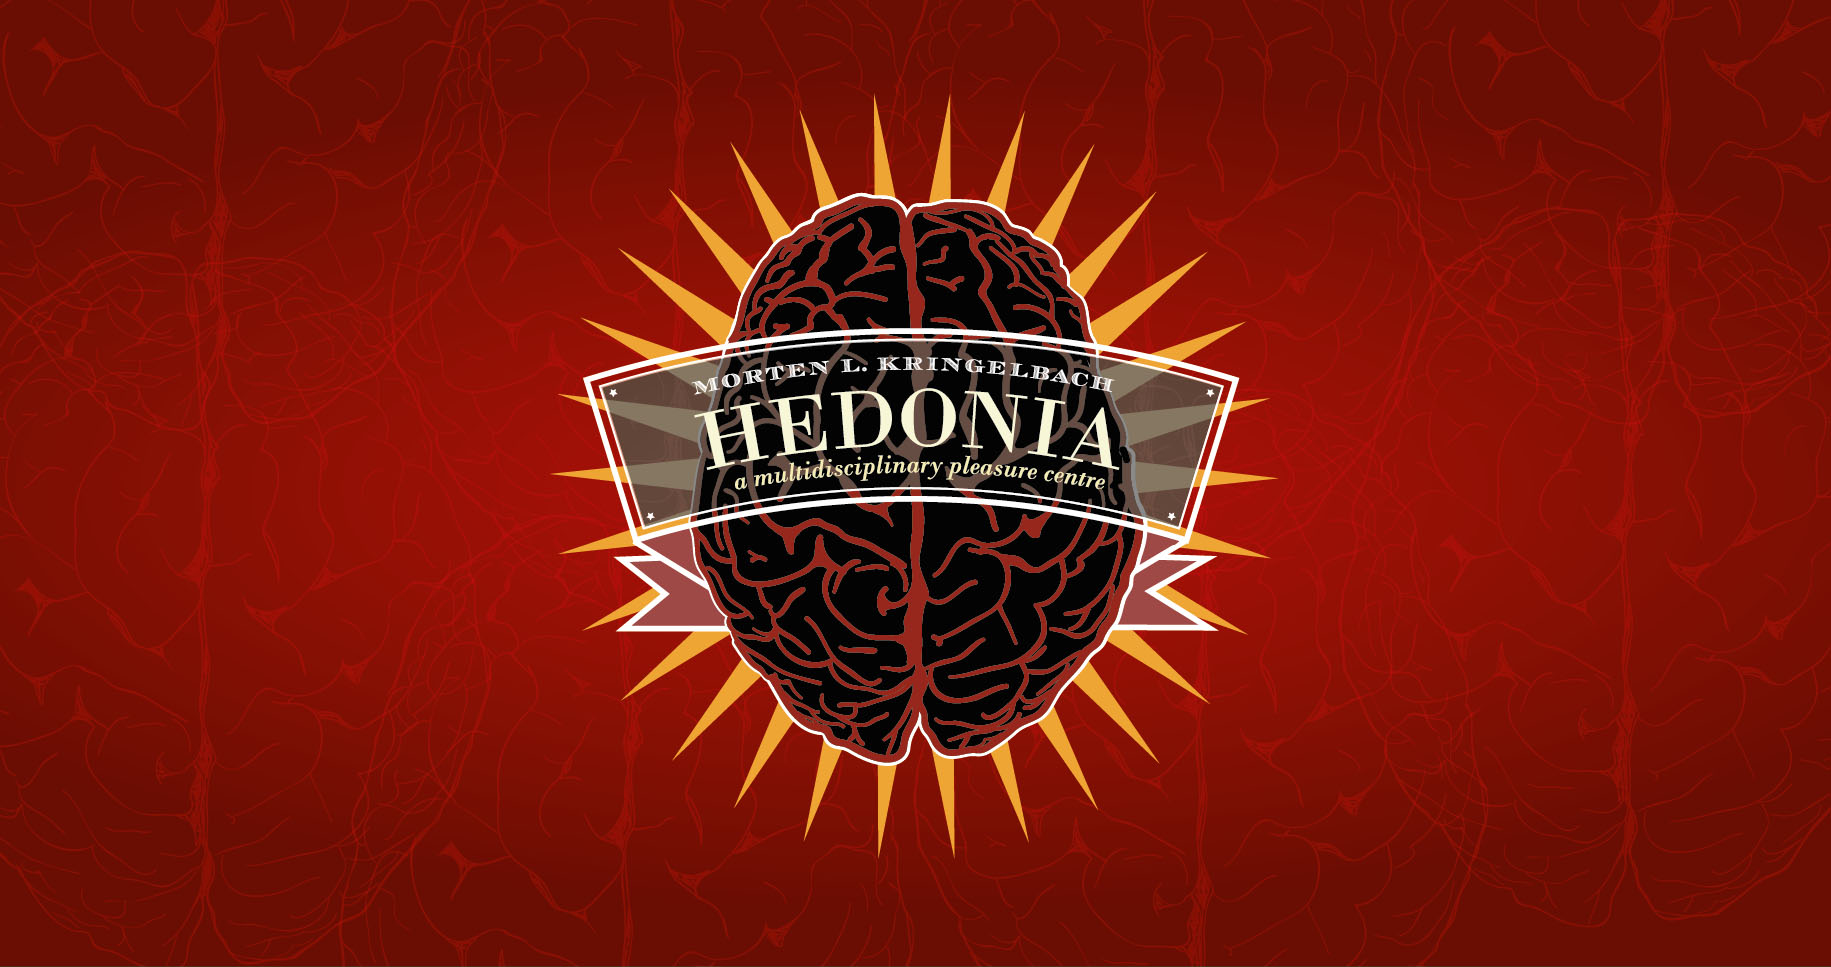 HedoniaPleasureCentre